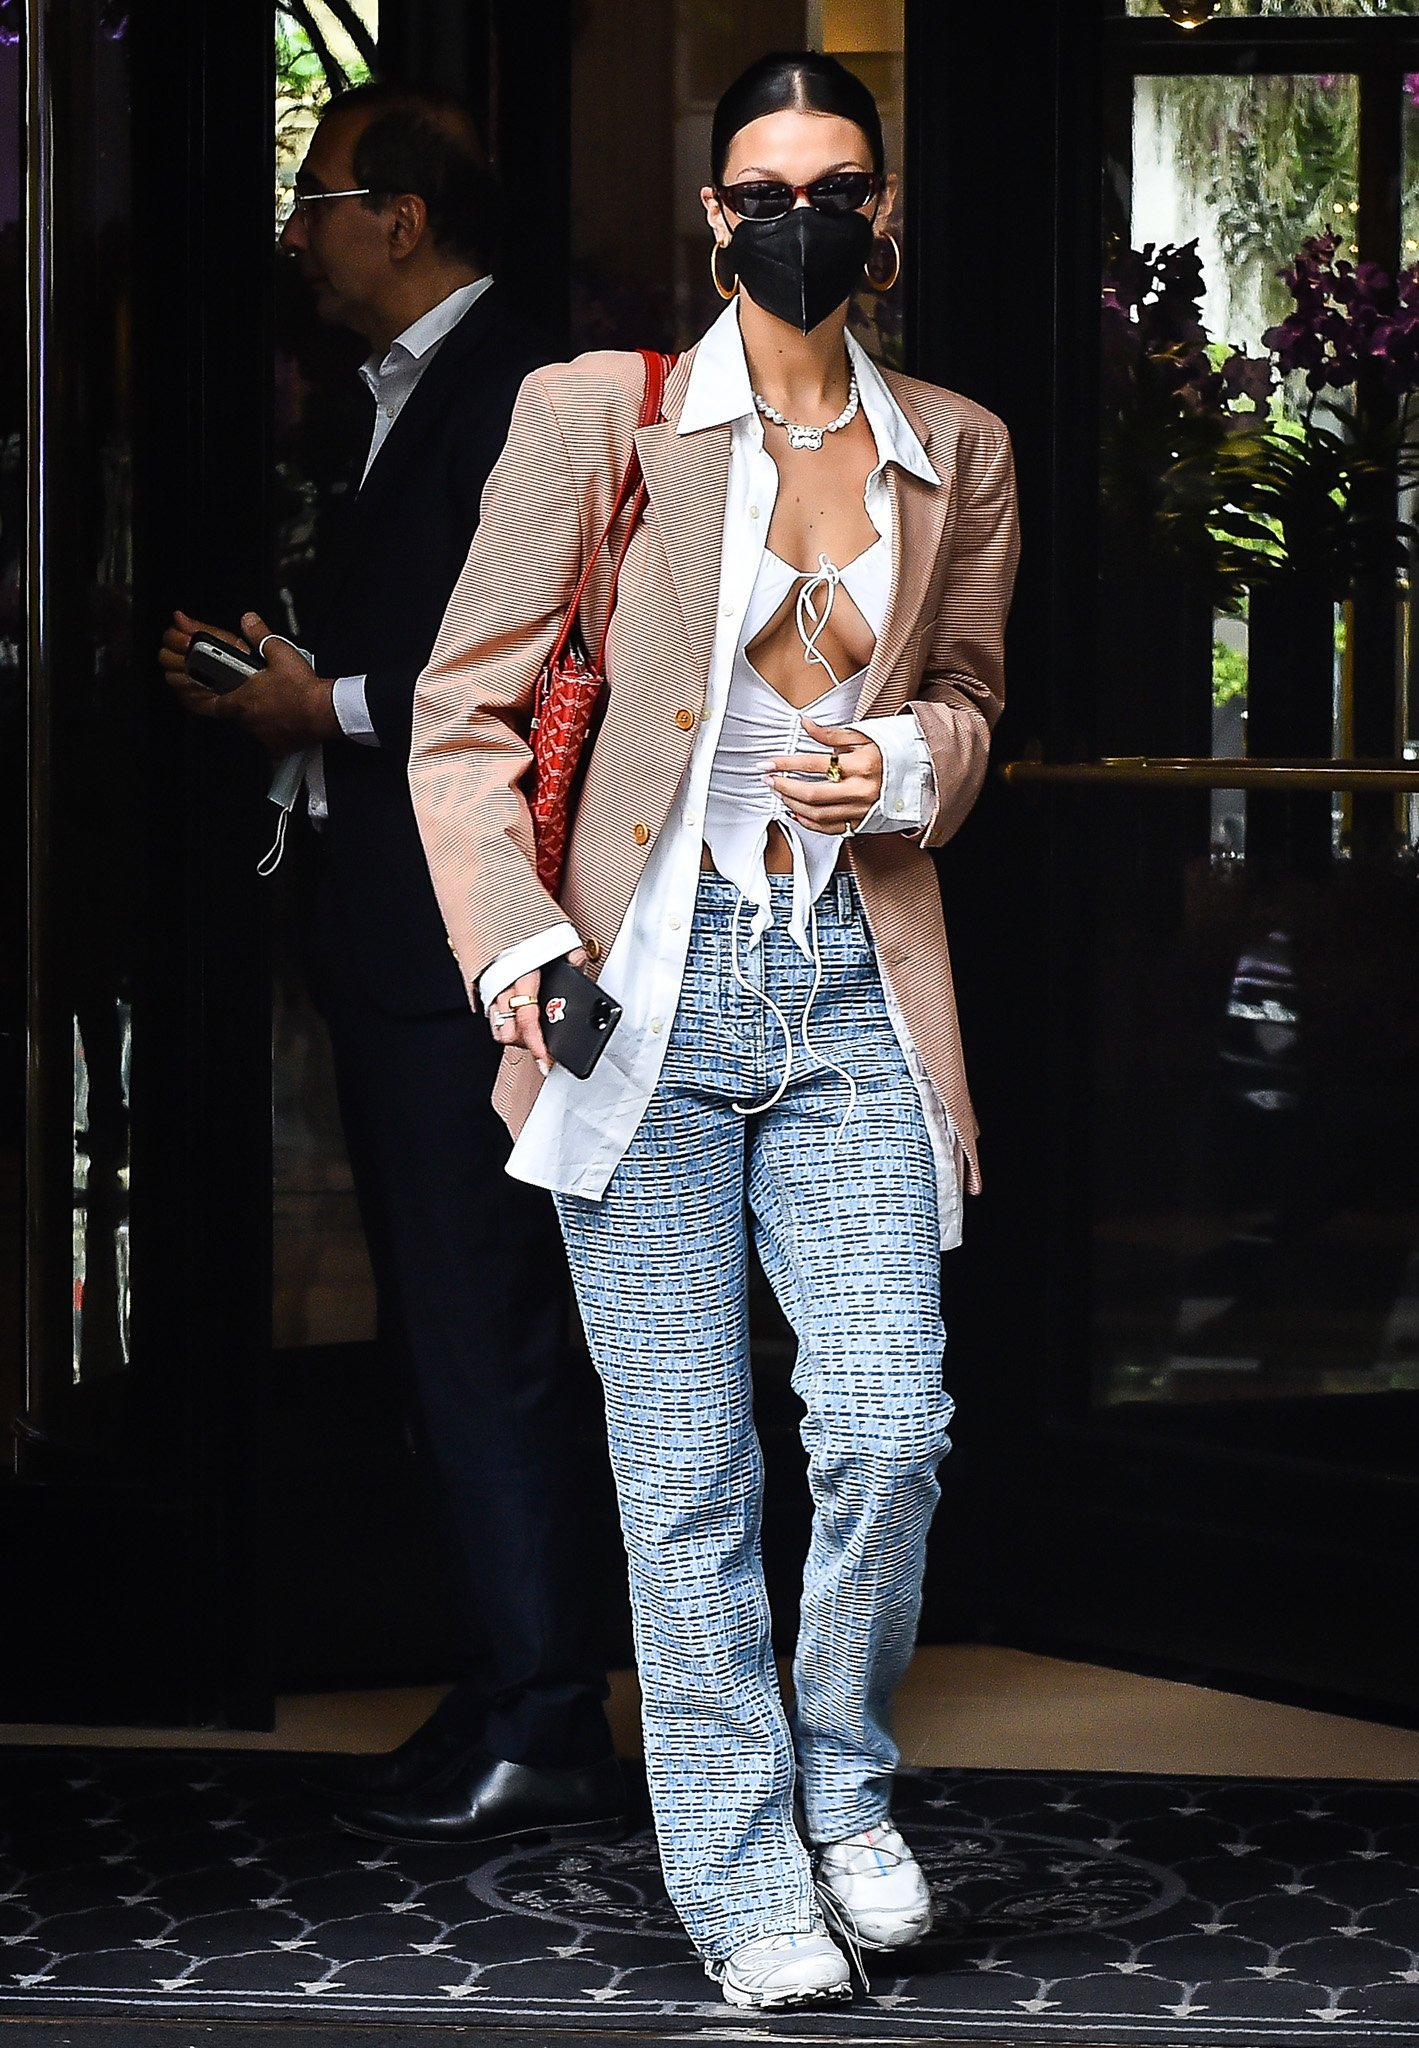 Bella Hadid flashes her abs and cleavage in an I.Am.Gia Svana white top with white shirt, red checkered blazer, and Givenchy pants